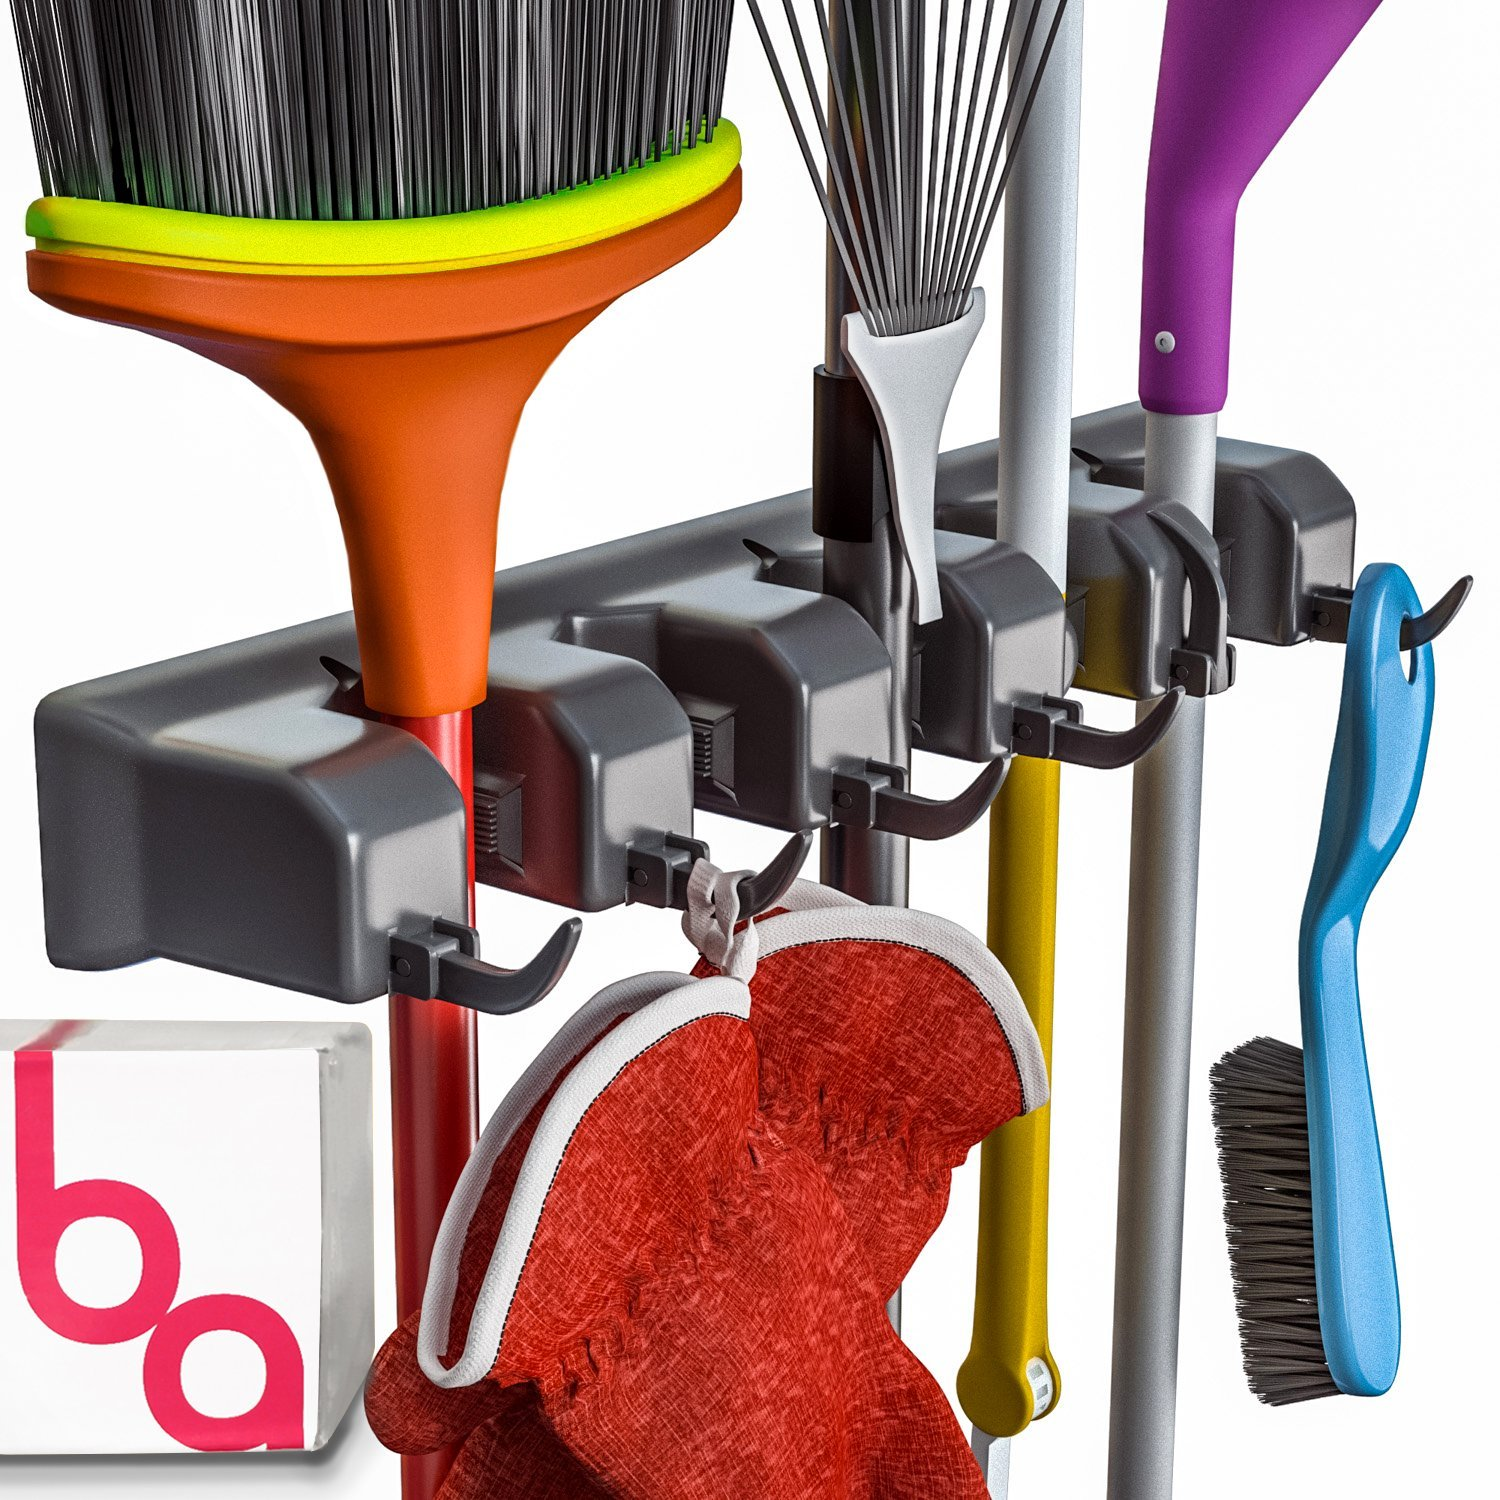 Berry Ave Broom Holder and Garden Tool Organizer for Rake or Mop Handles Up to 1.25-Inches (Black) by Berry Ave